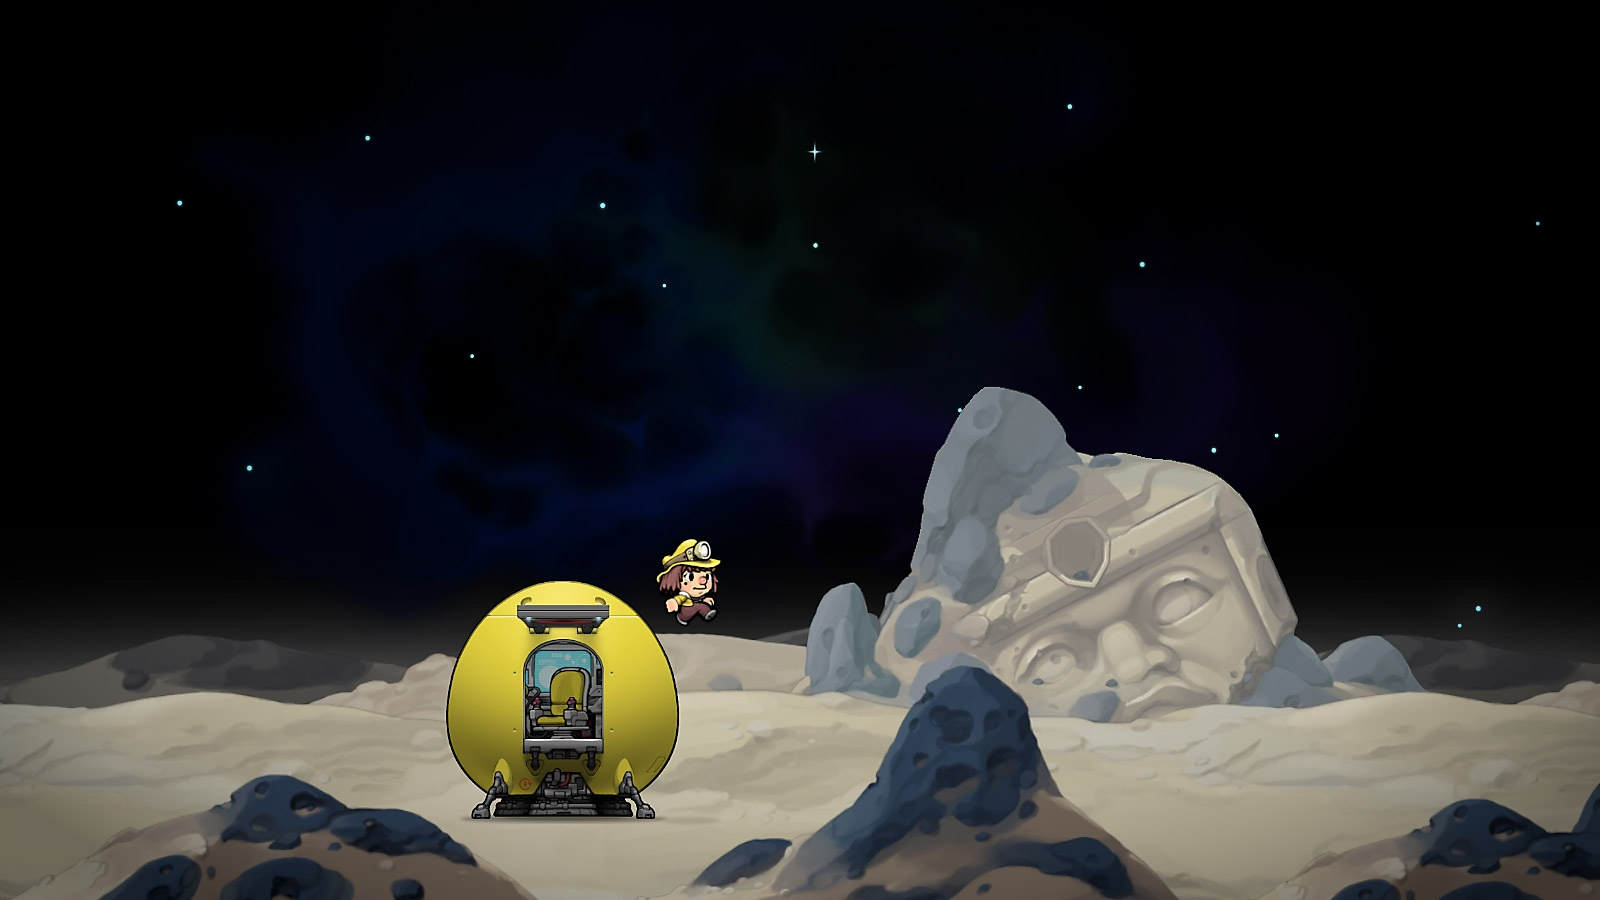 Spelunky 2 - Screenshot - Space